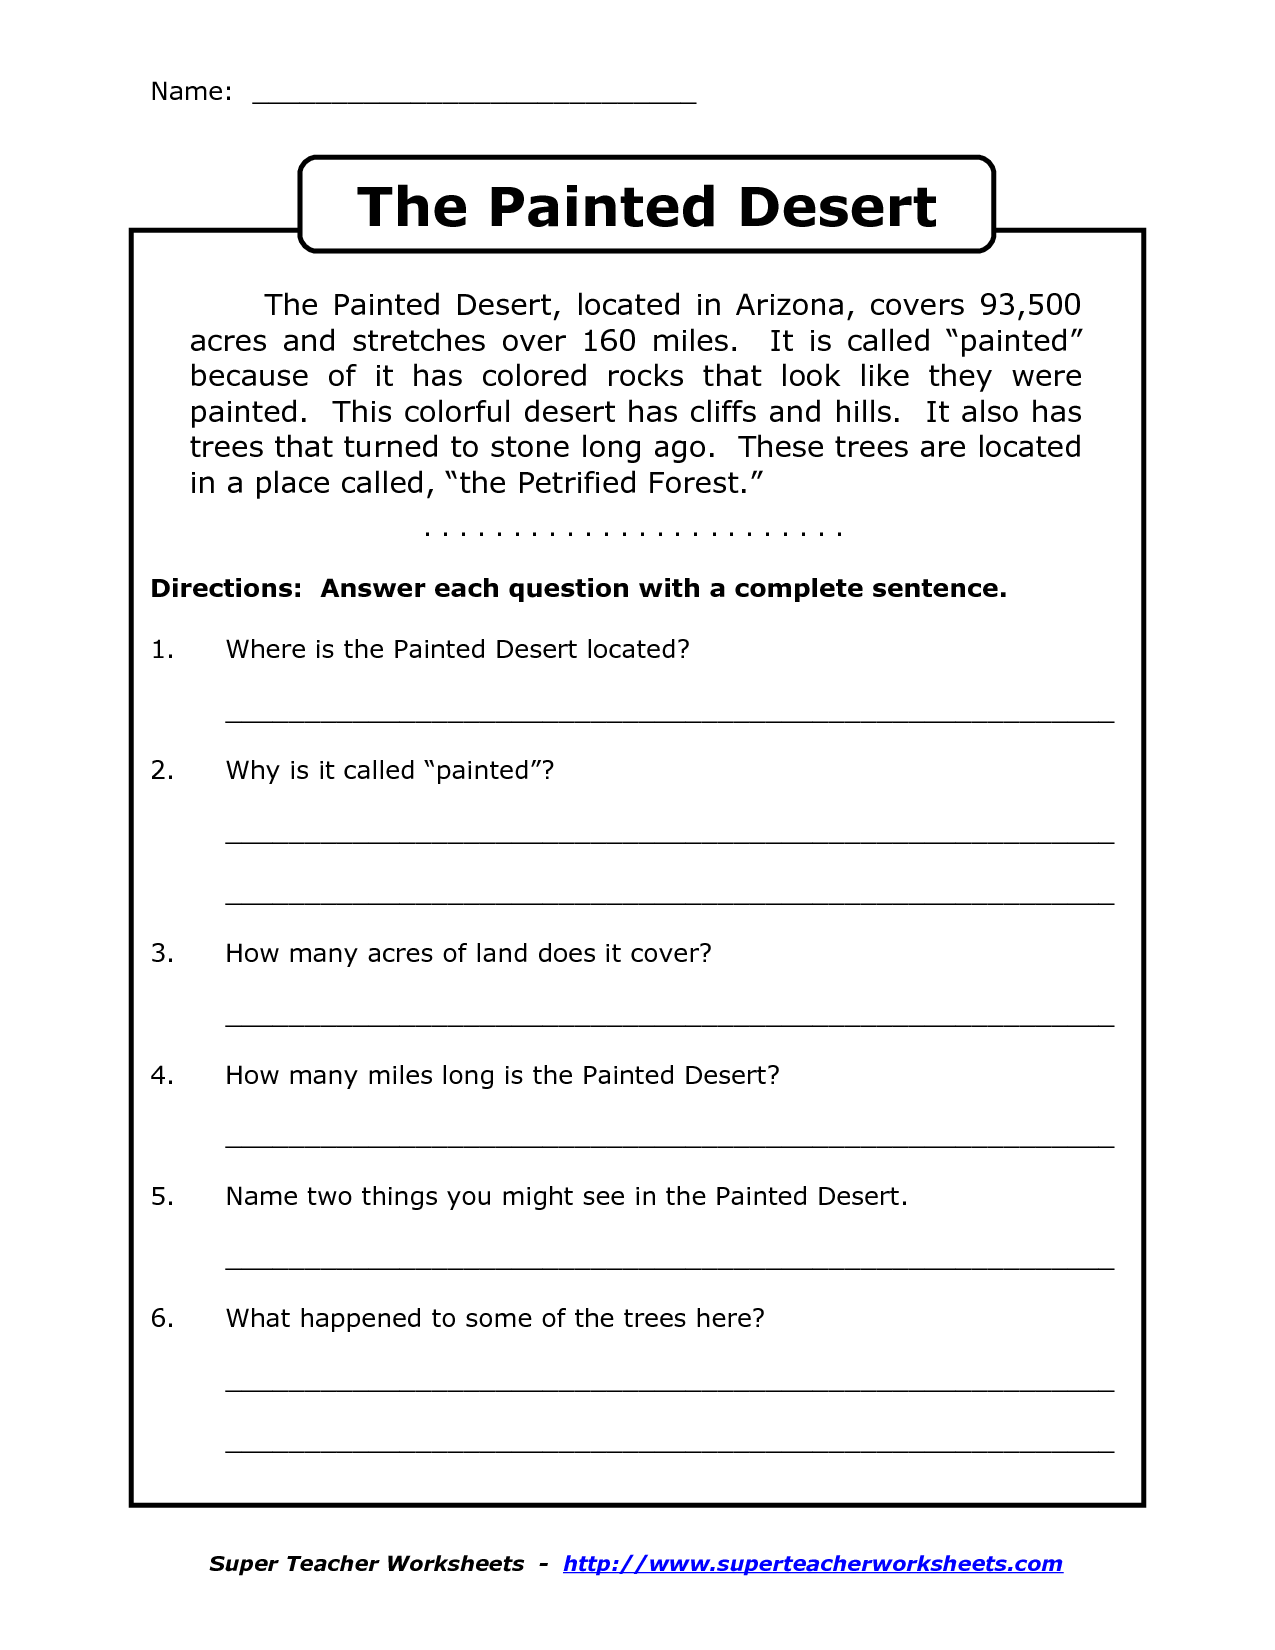 Worksheets 1st Grade Ela Worksheets enrichment language worksheets google search comprehension worksheet for grade the painted desert arizona dont forget to edit colored and colorful missing letter u